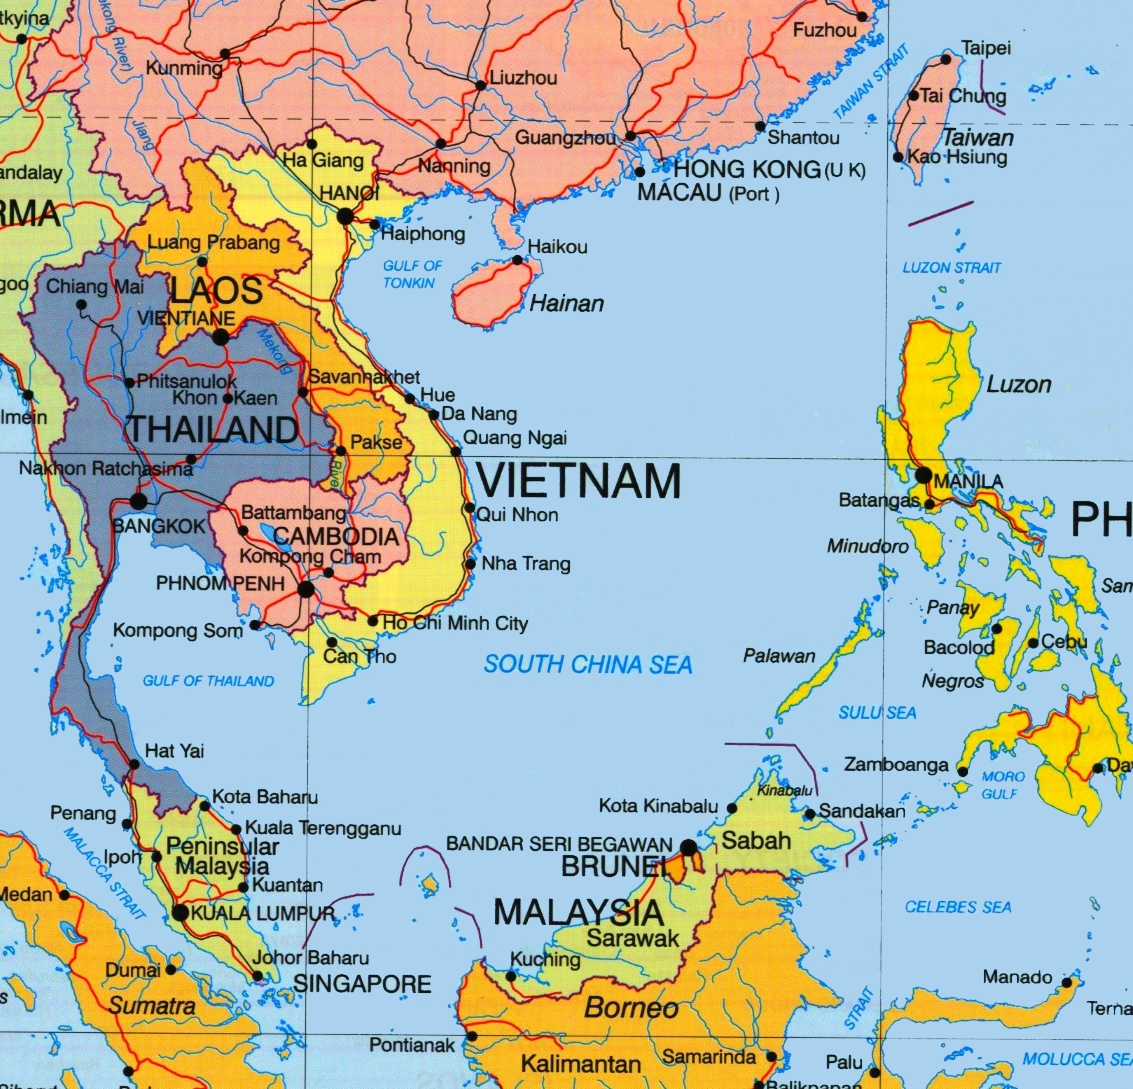 Map Of South China Sea South China Sea political map